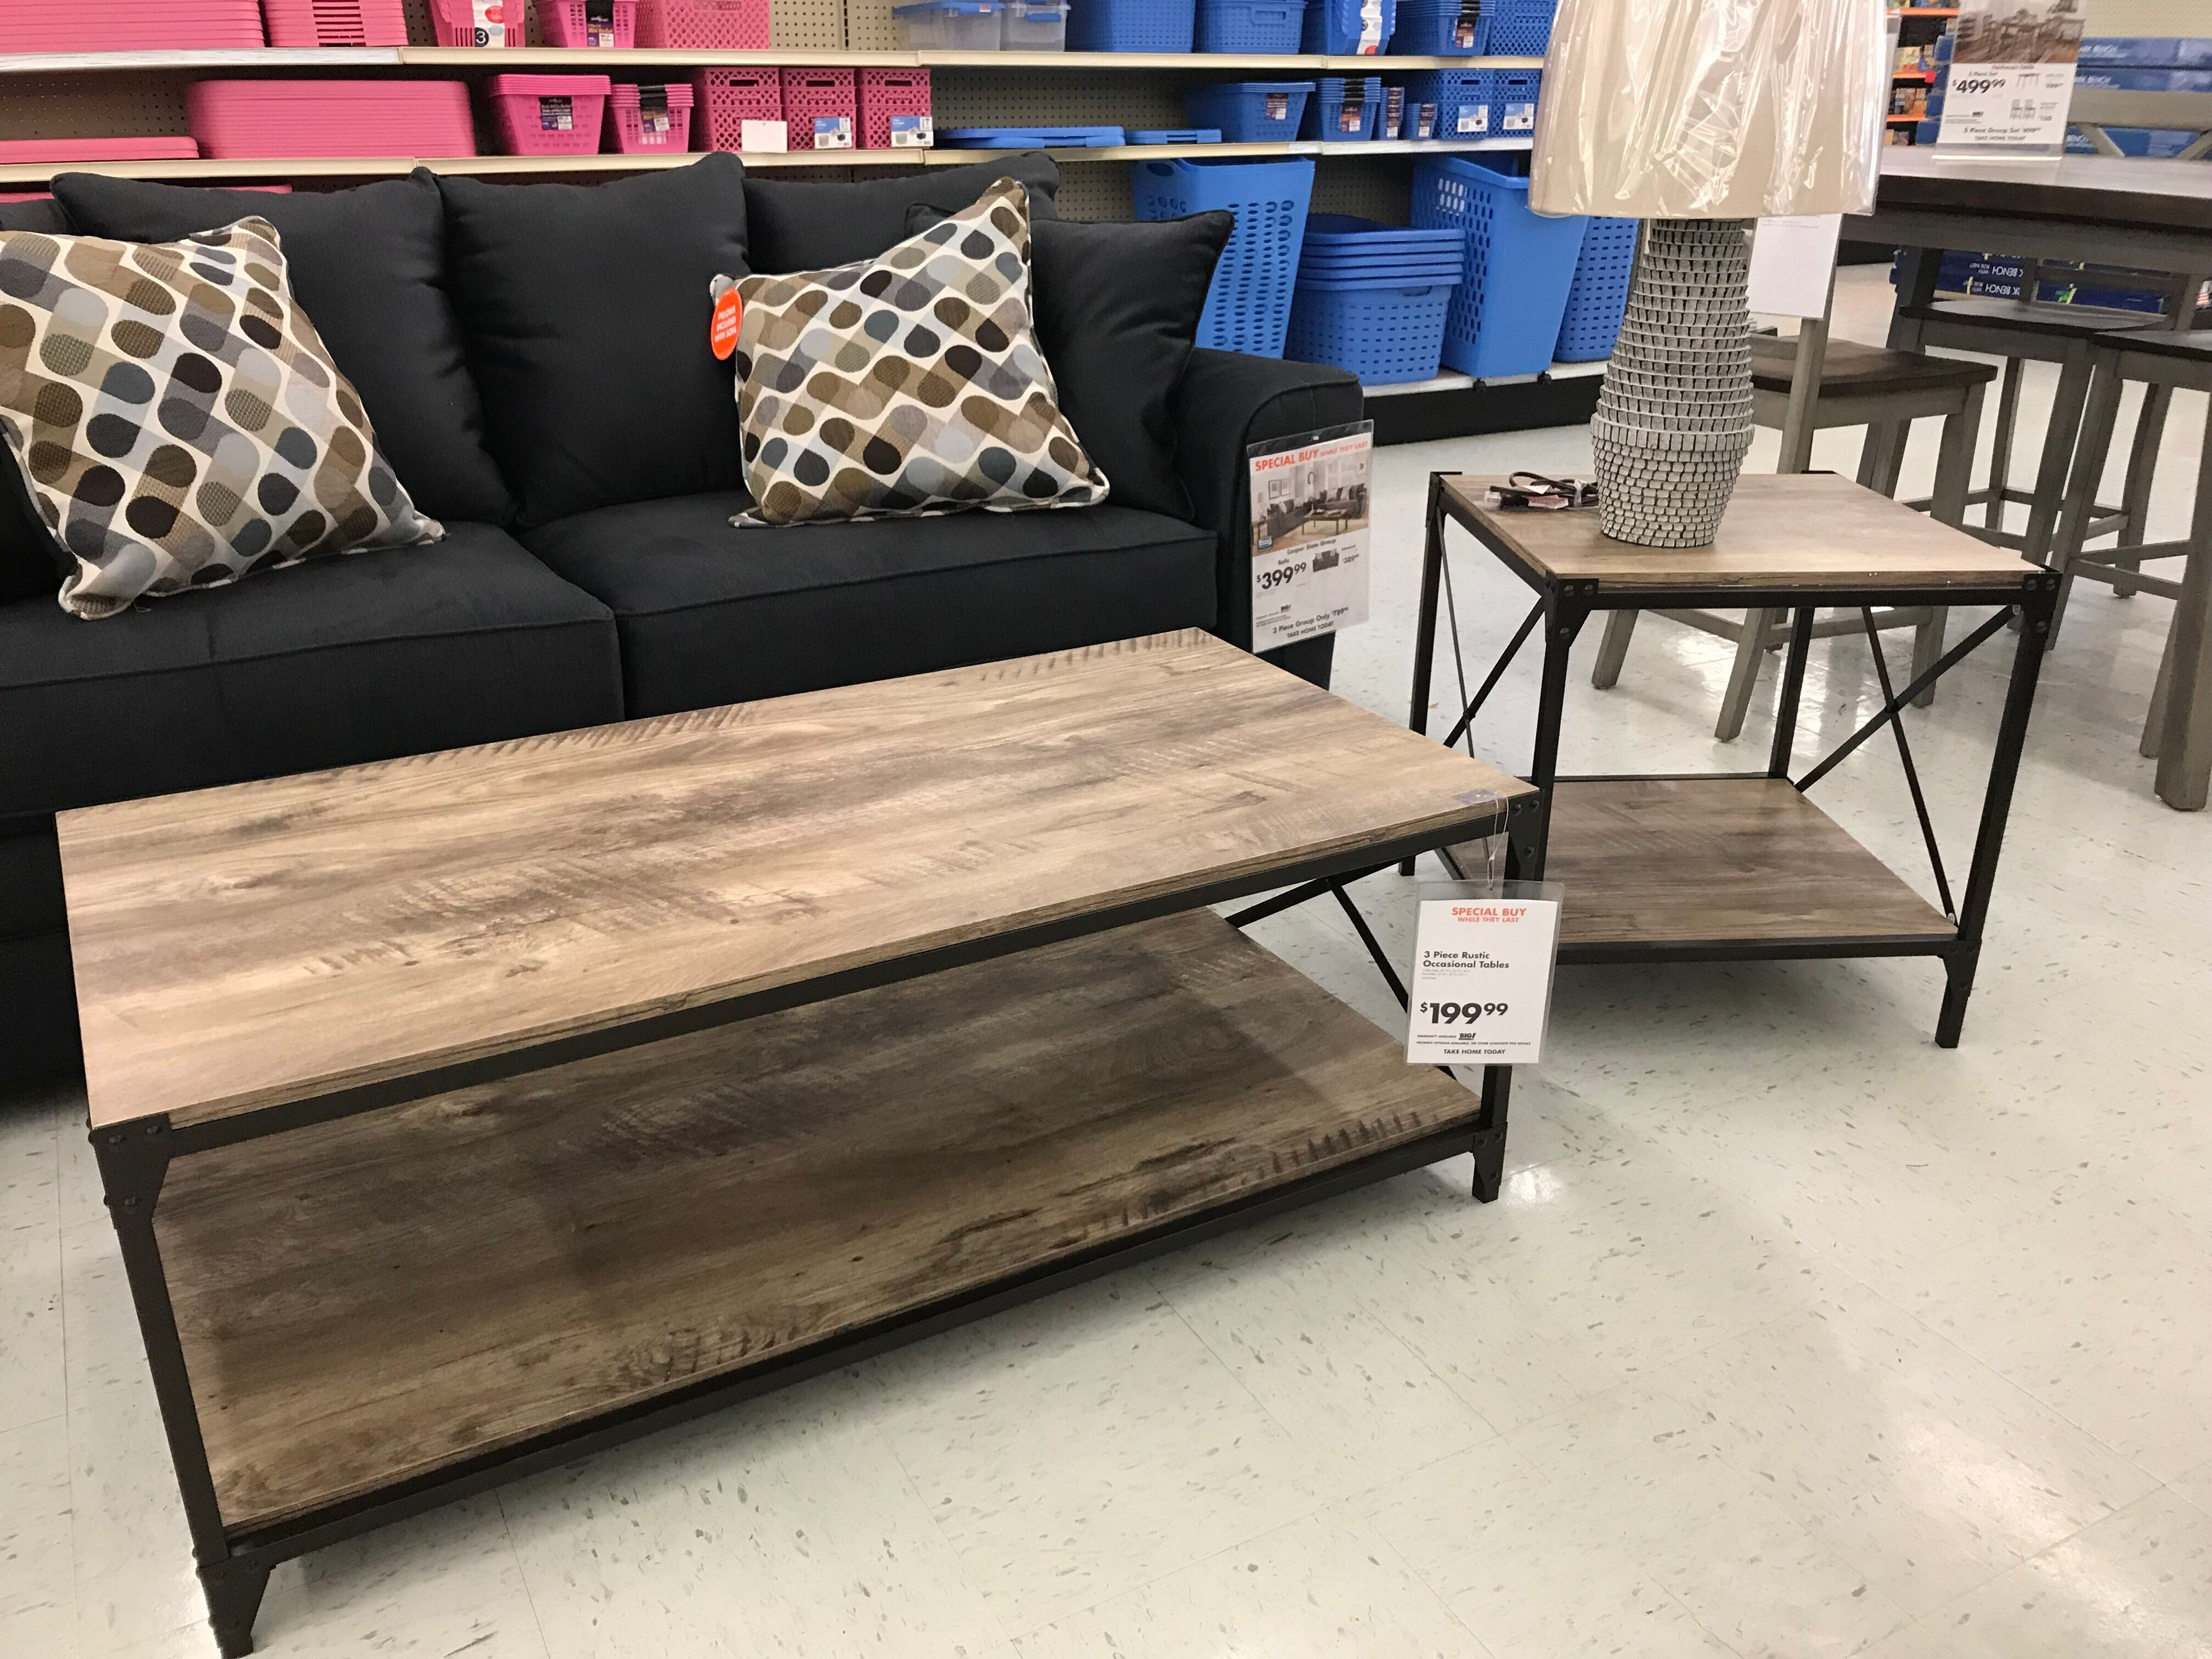 100 Off 500 At Big Lots Save On Sectionals Farmhouse Furniture Big Lots Furniture Farmhouse Furniture Furniture [ 3024 x 4032 Pixel ]